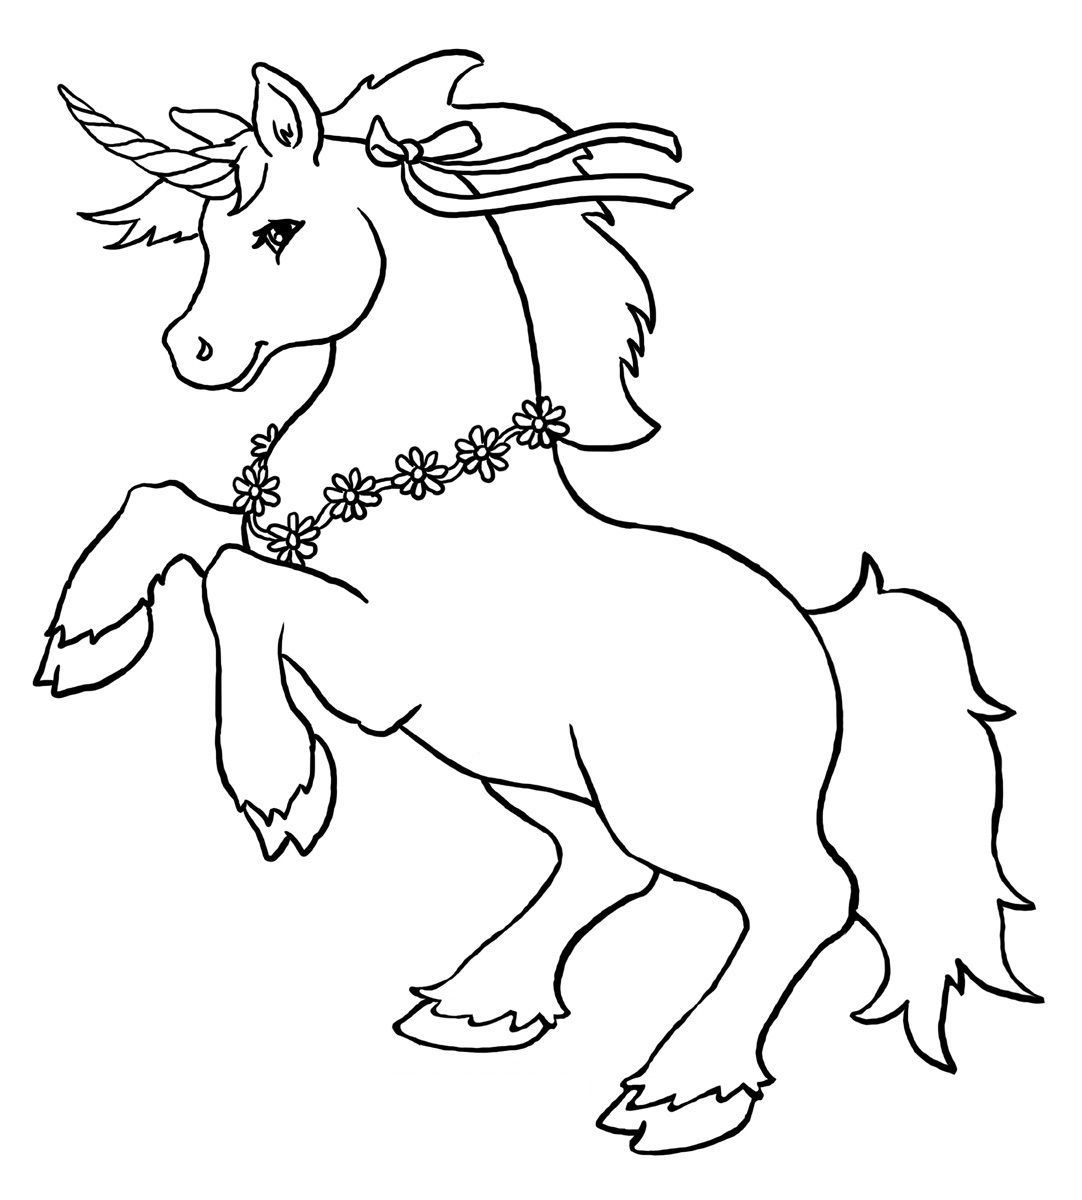 Free Printable Unicorn Coloring Pages For Kids Unicorn Pictures To Color Unicorn Coloring Pages Unicorn Drawing